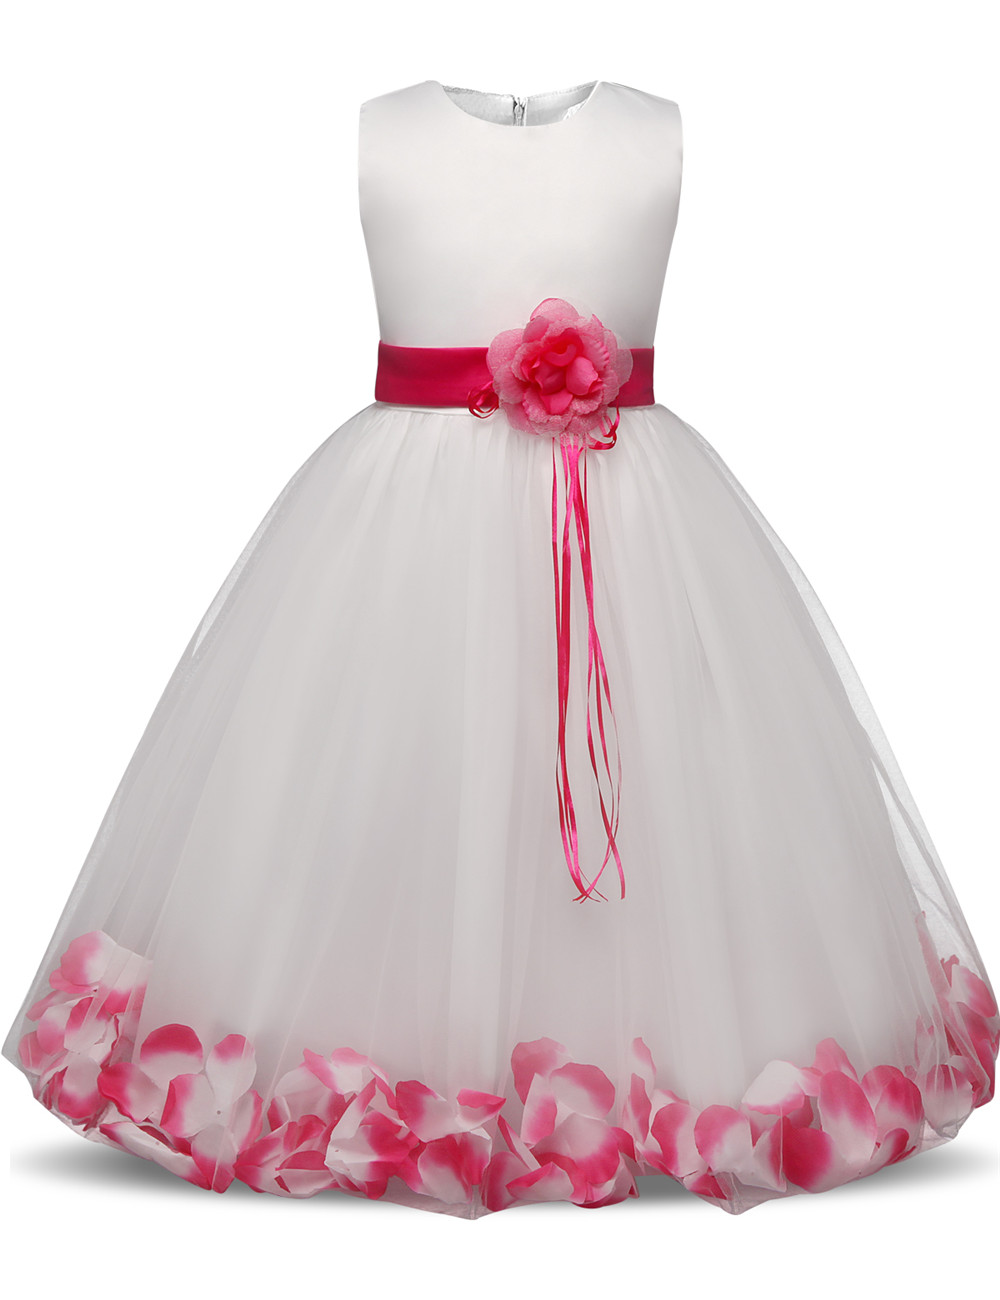 Flower children 39 s dresses girls kids clothes for wedding 8 for 10 year old dresses for weddings